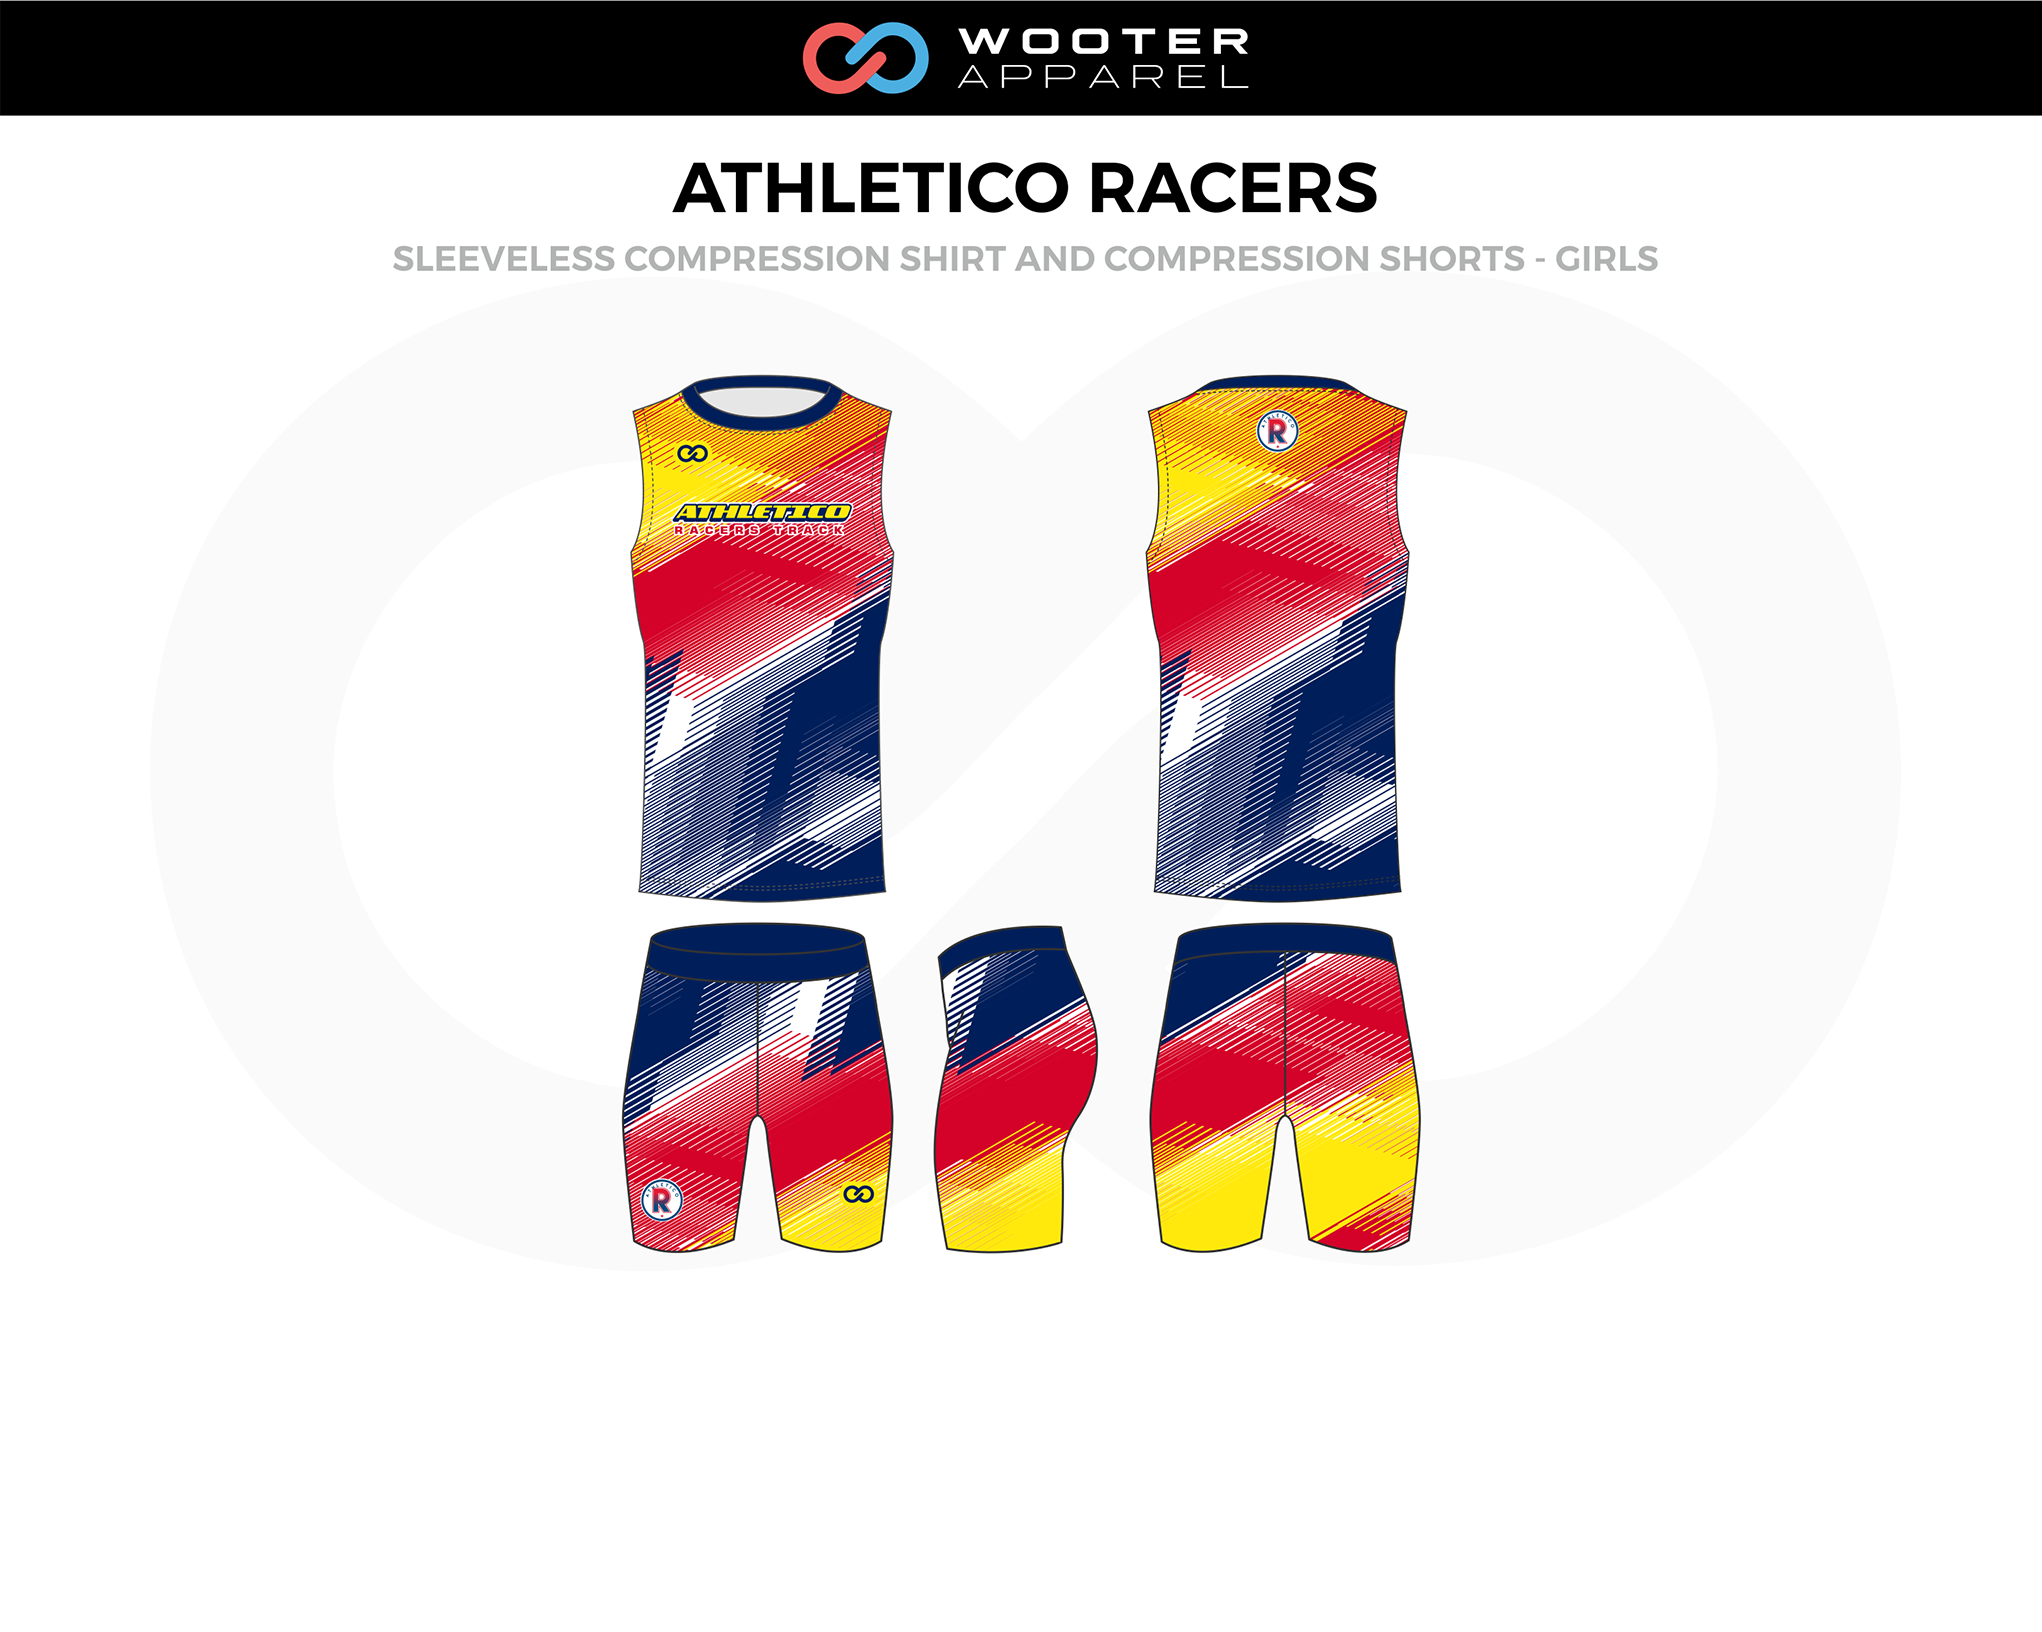 ATHLETICO RACERS Blue Red Yellow Girls Sleeveless Compression Track Jerseys, and Shorts